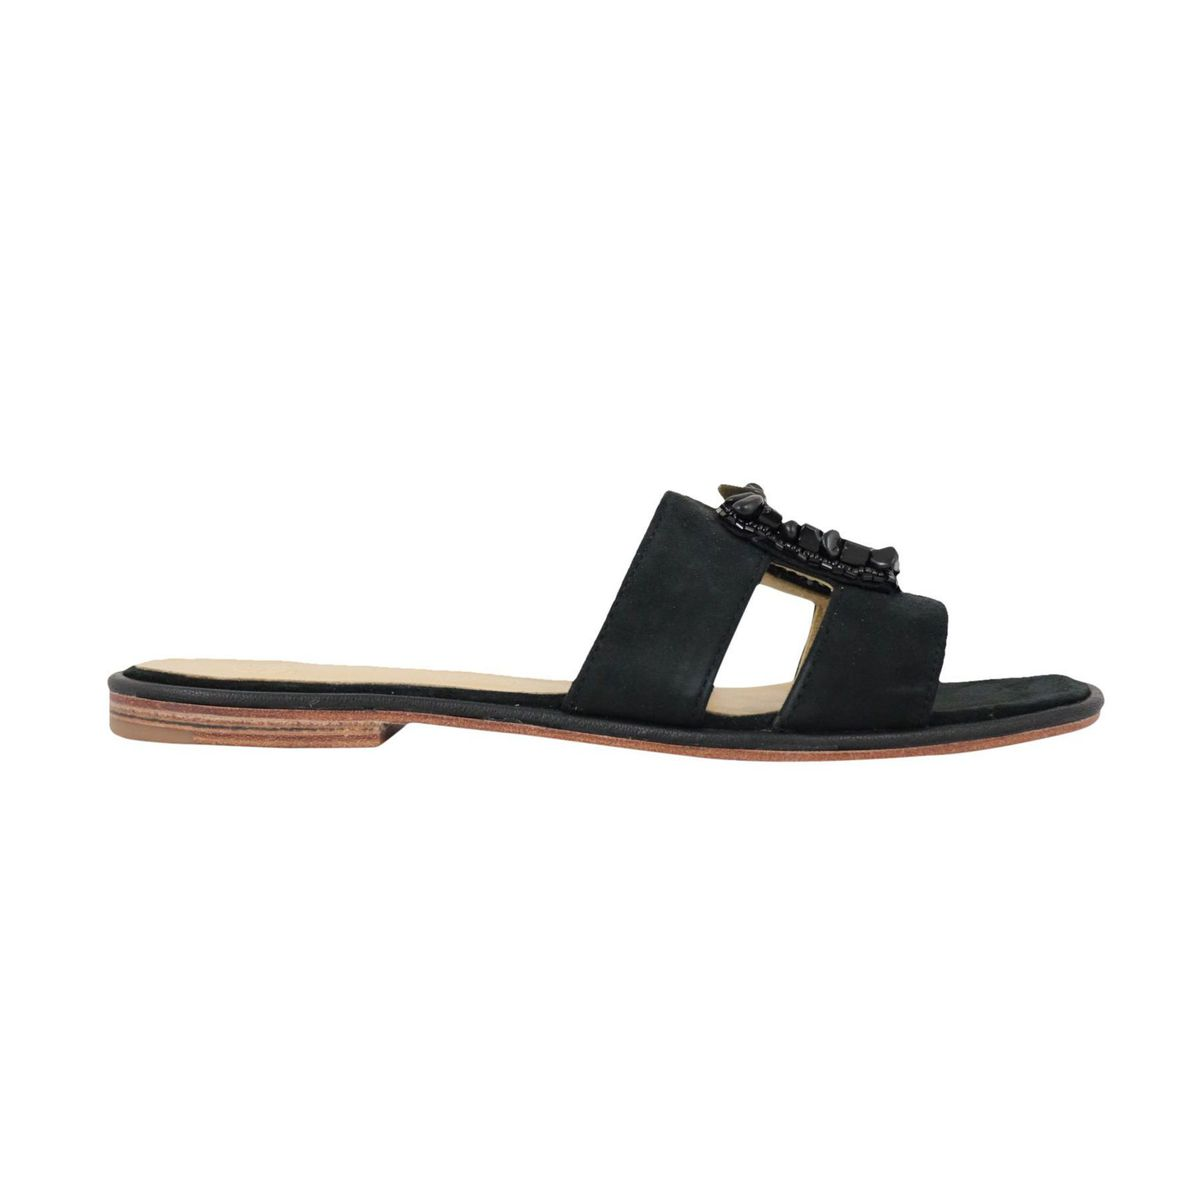 Capri Stones sandal in suede effect fabric Black Maliparmi